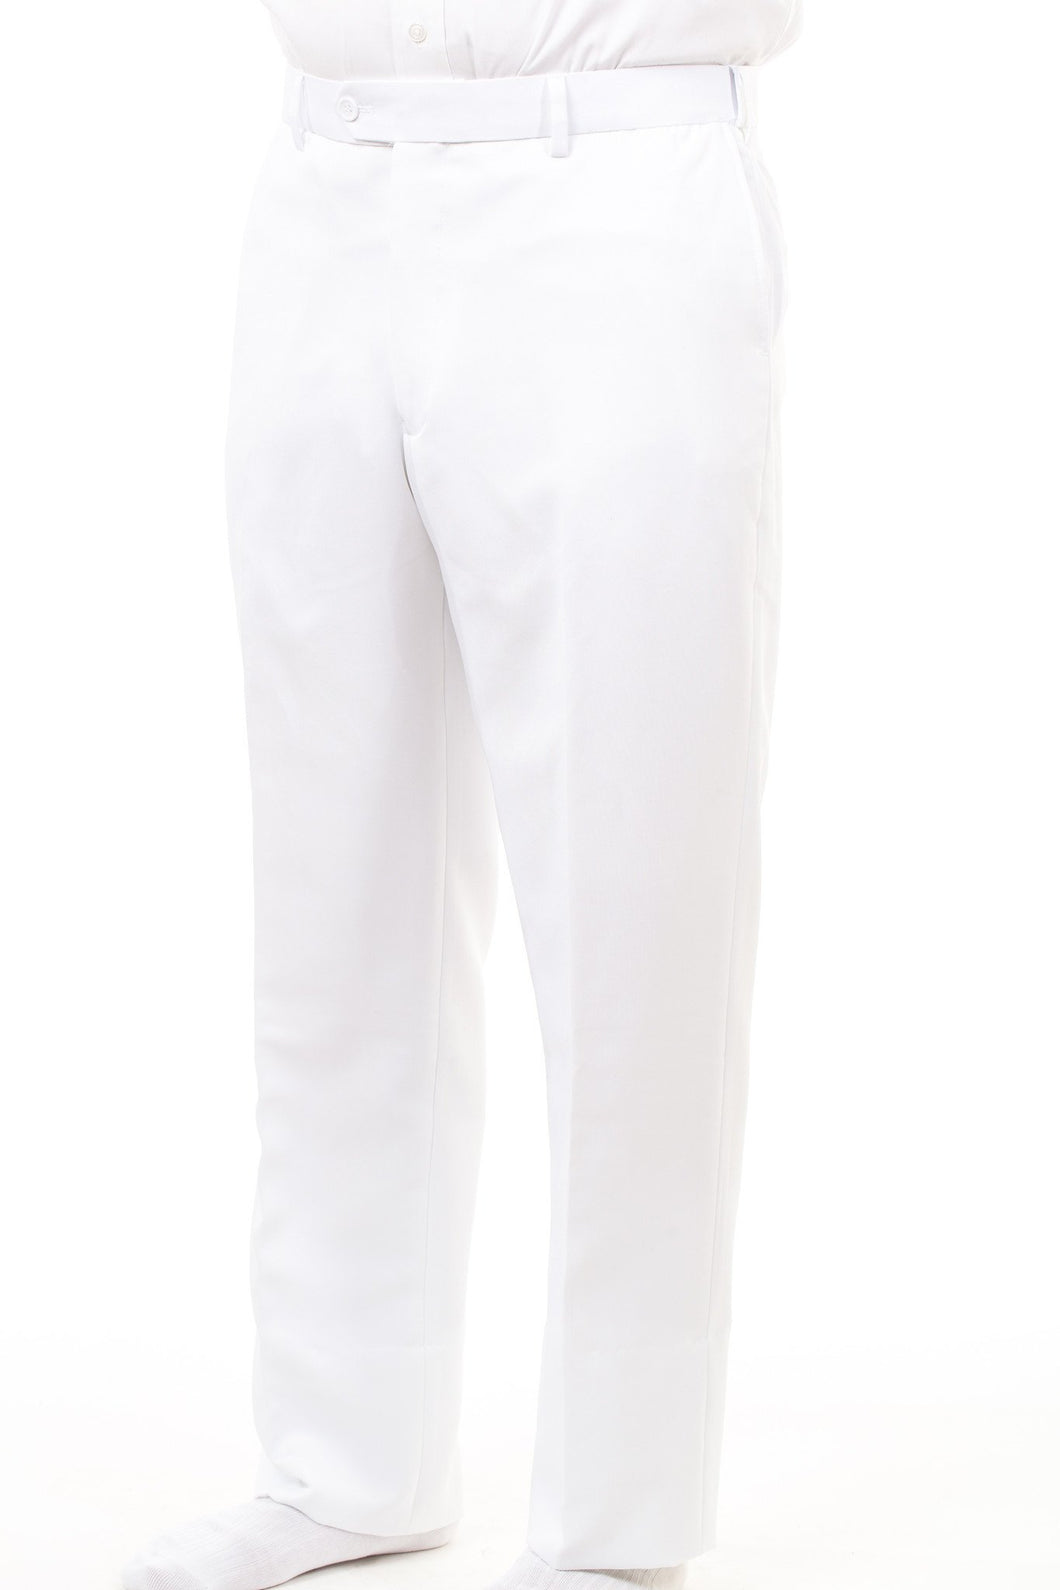 Men's White Dress Pants For Temple Clothing Outfits